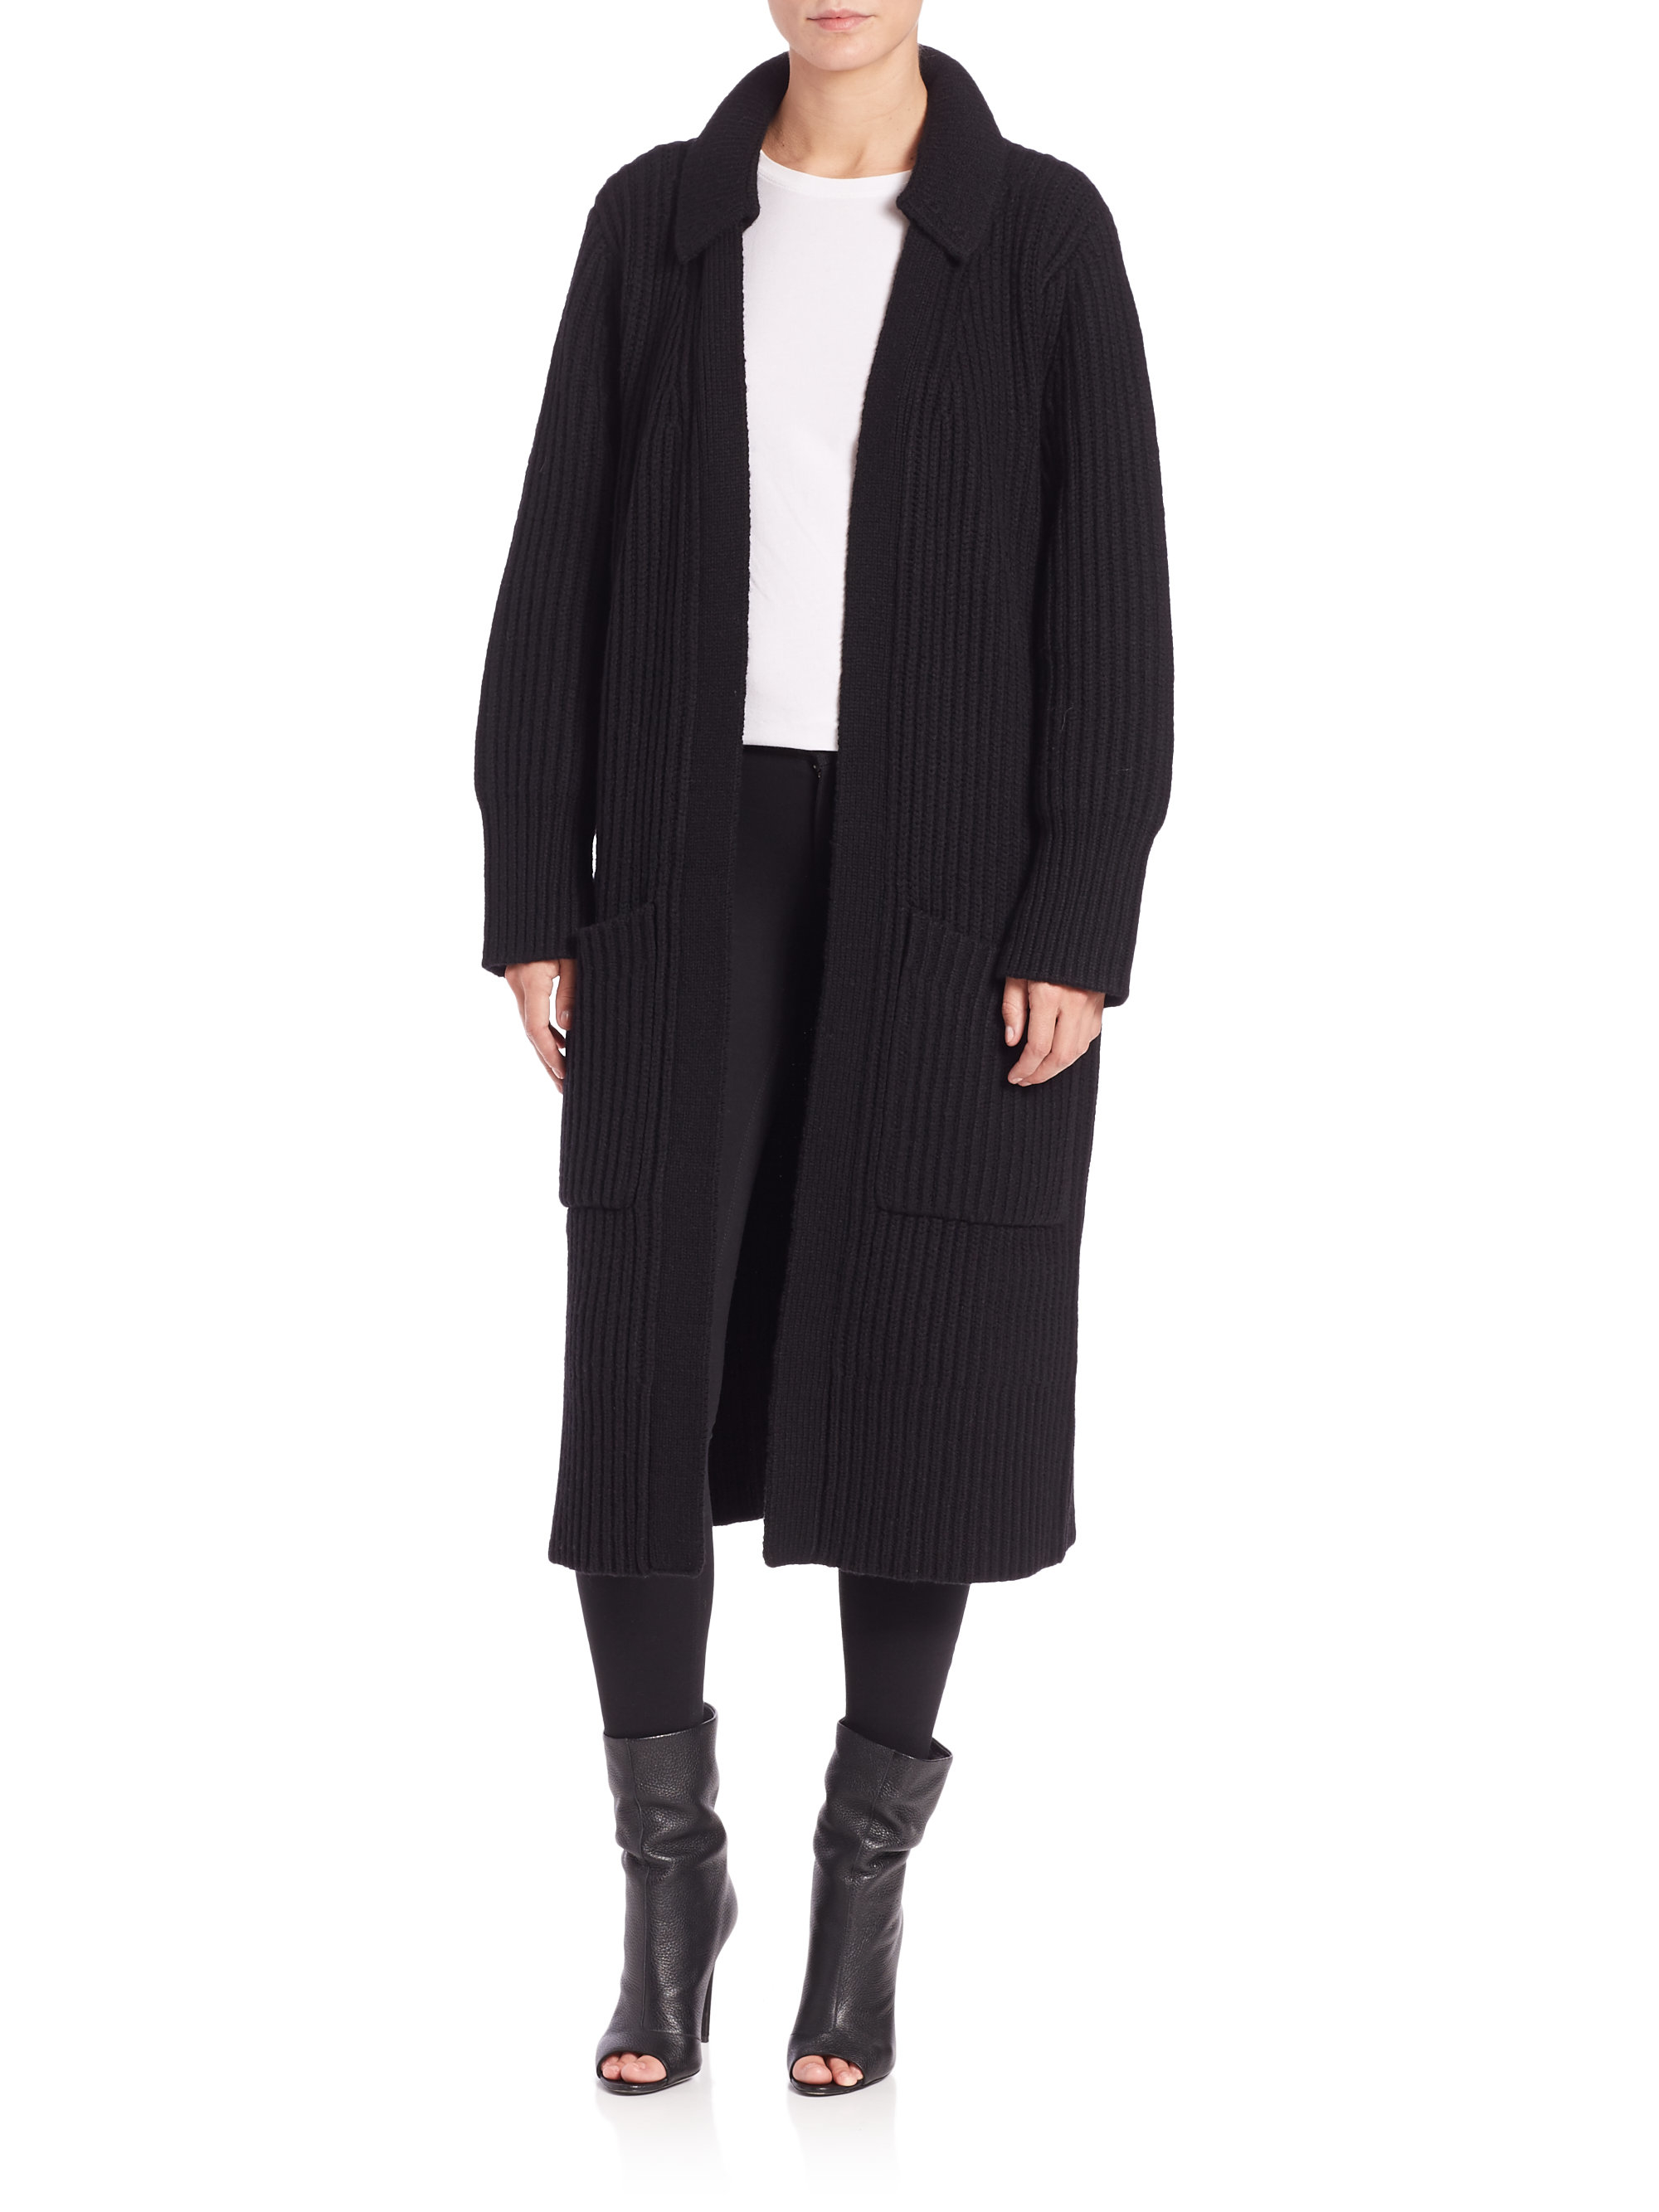 Find great deals on eBay for long cardigan coat. Shop with confidence.